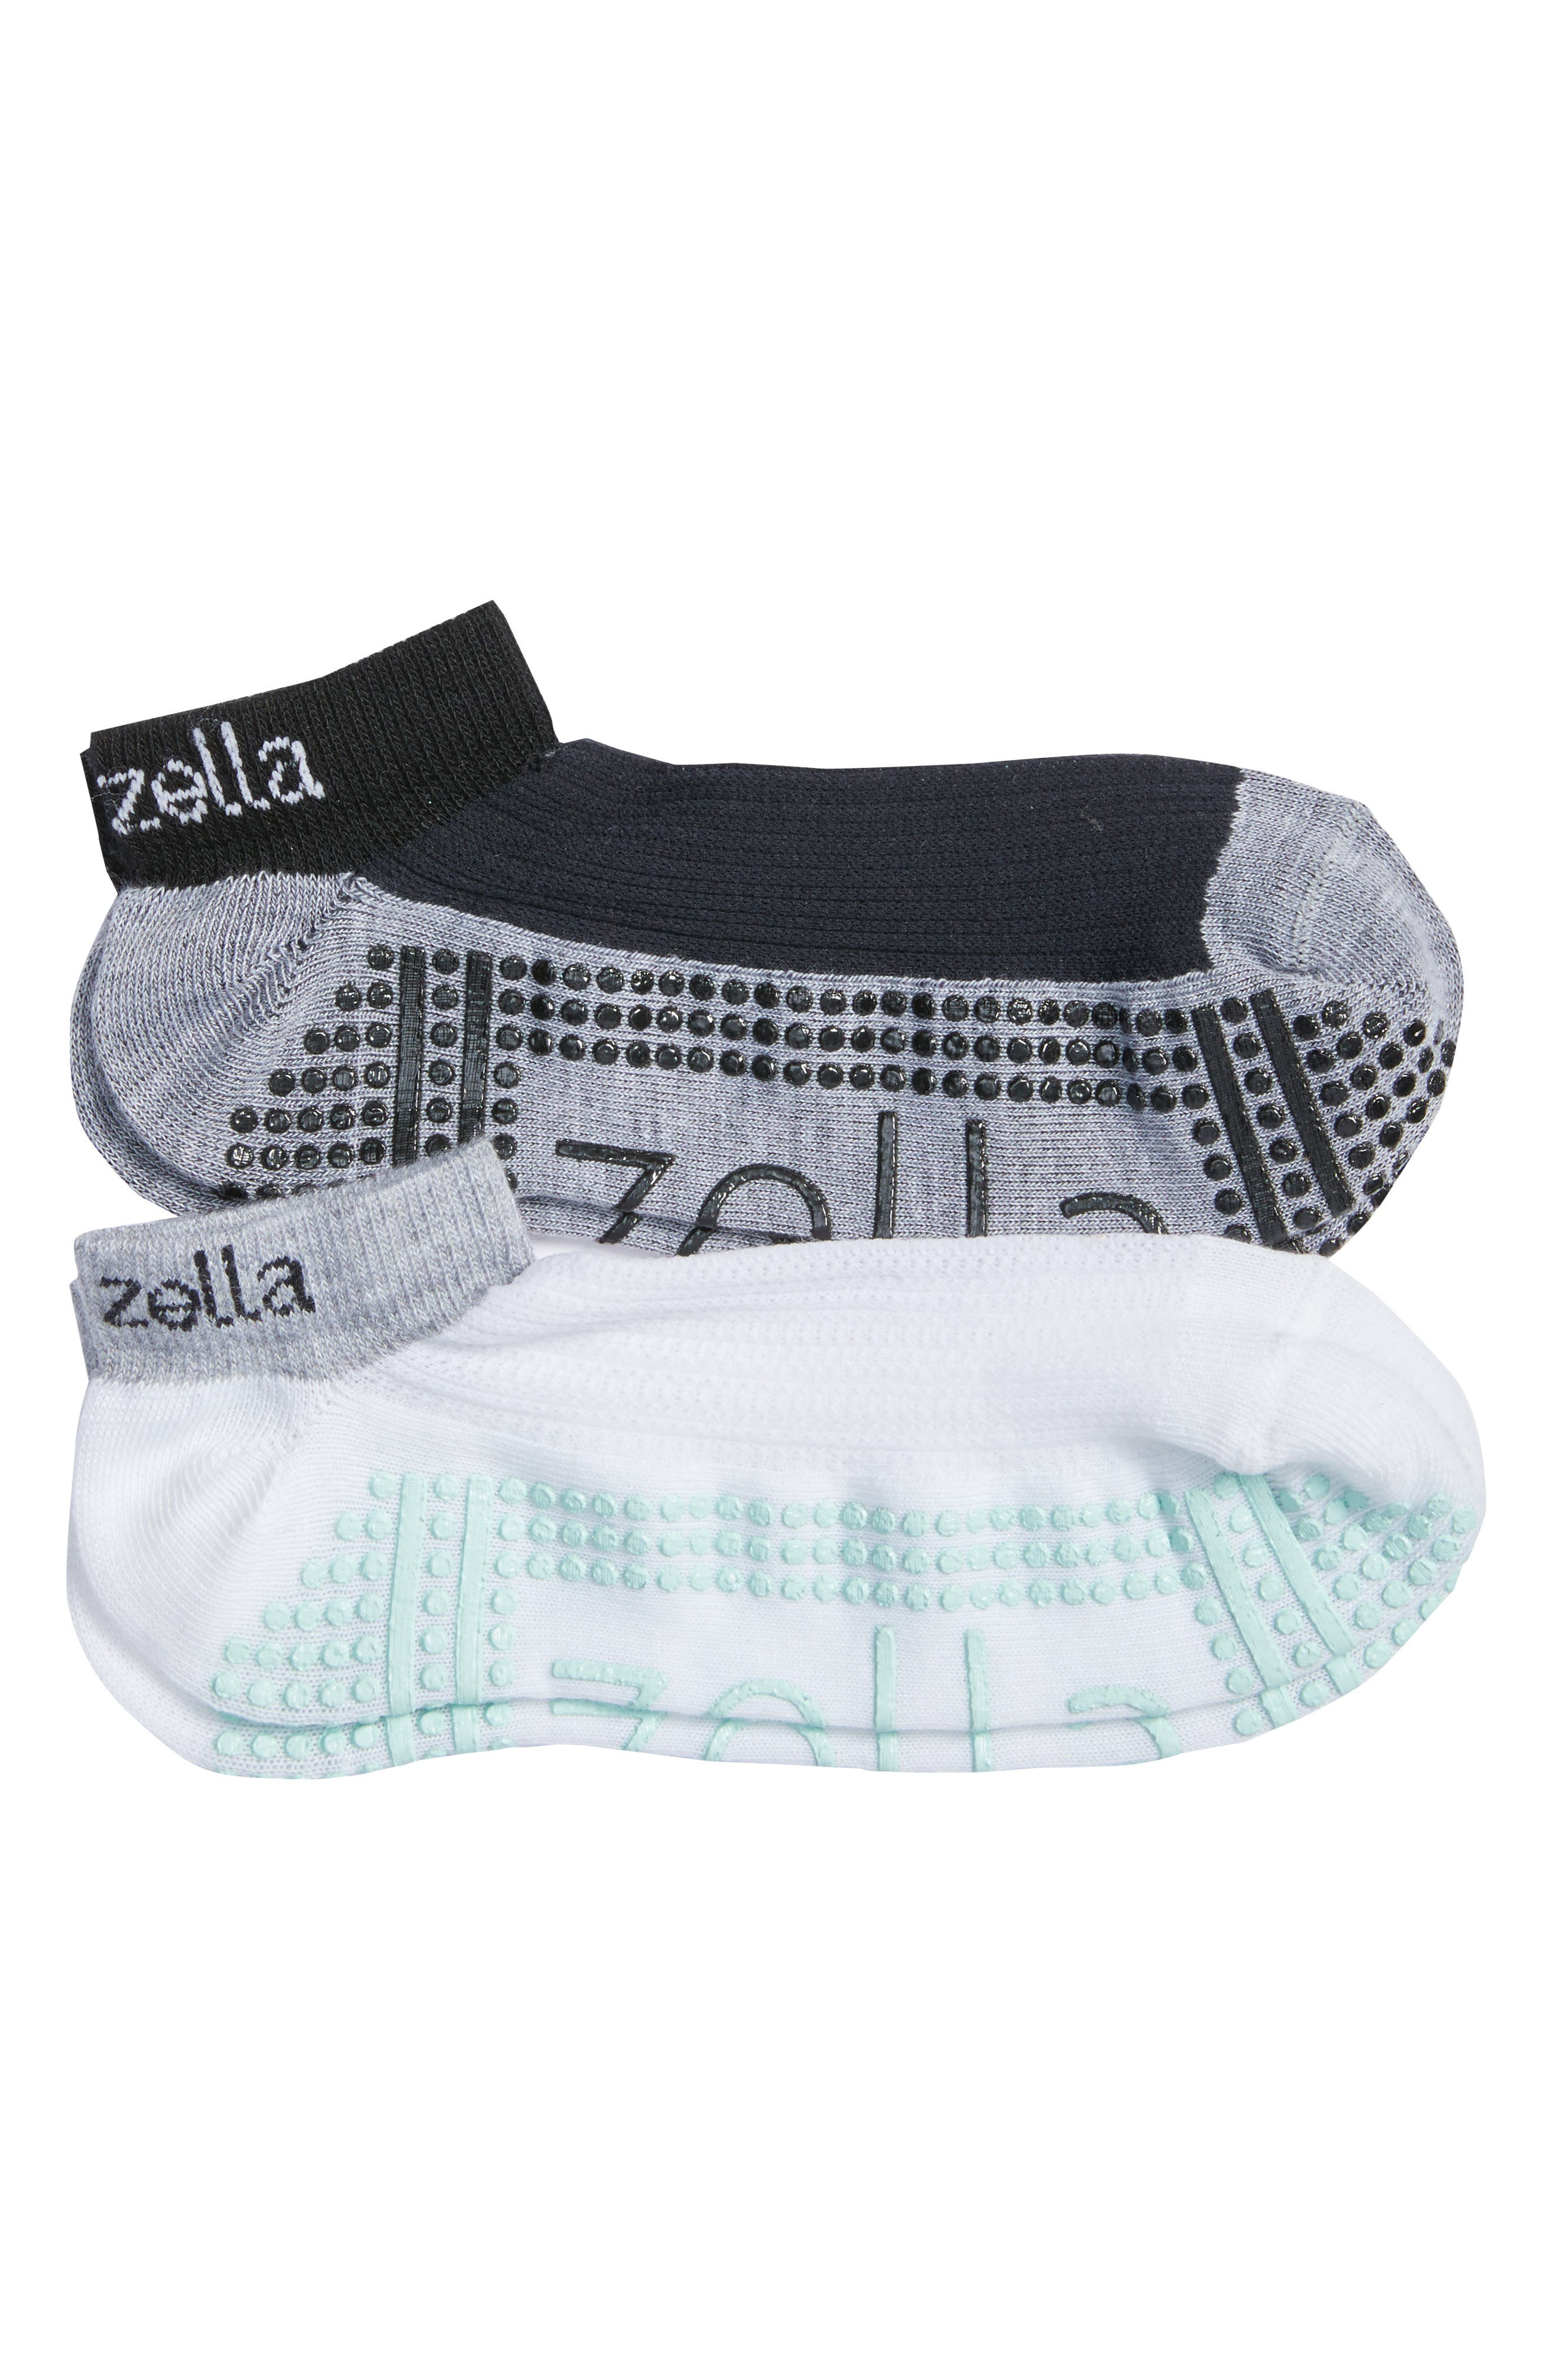 2-Pack Studio Ankle Socks,                             Main thumbnail 1, color,                             Grey Wolf Heather/ Teal Surf